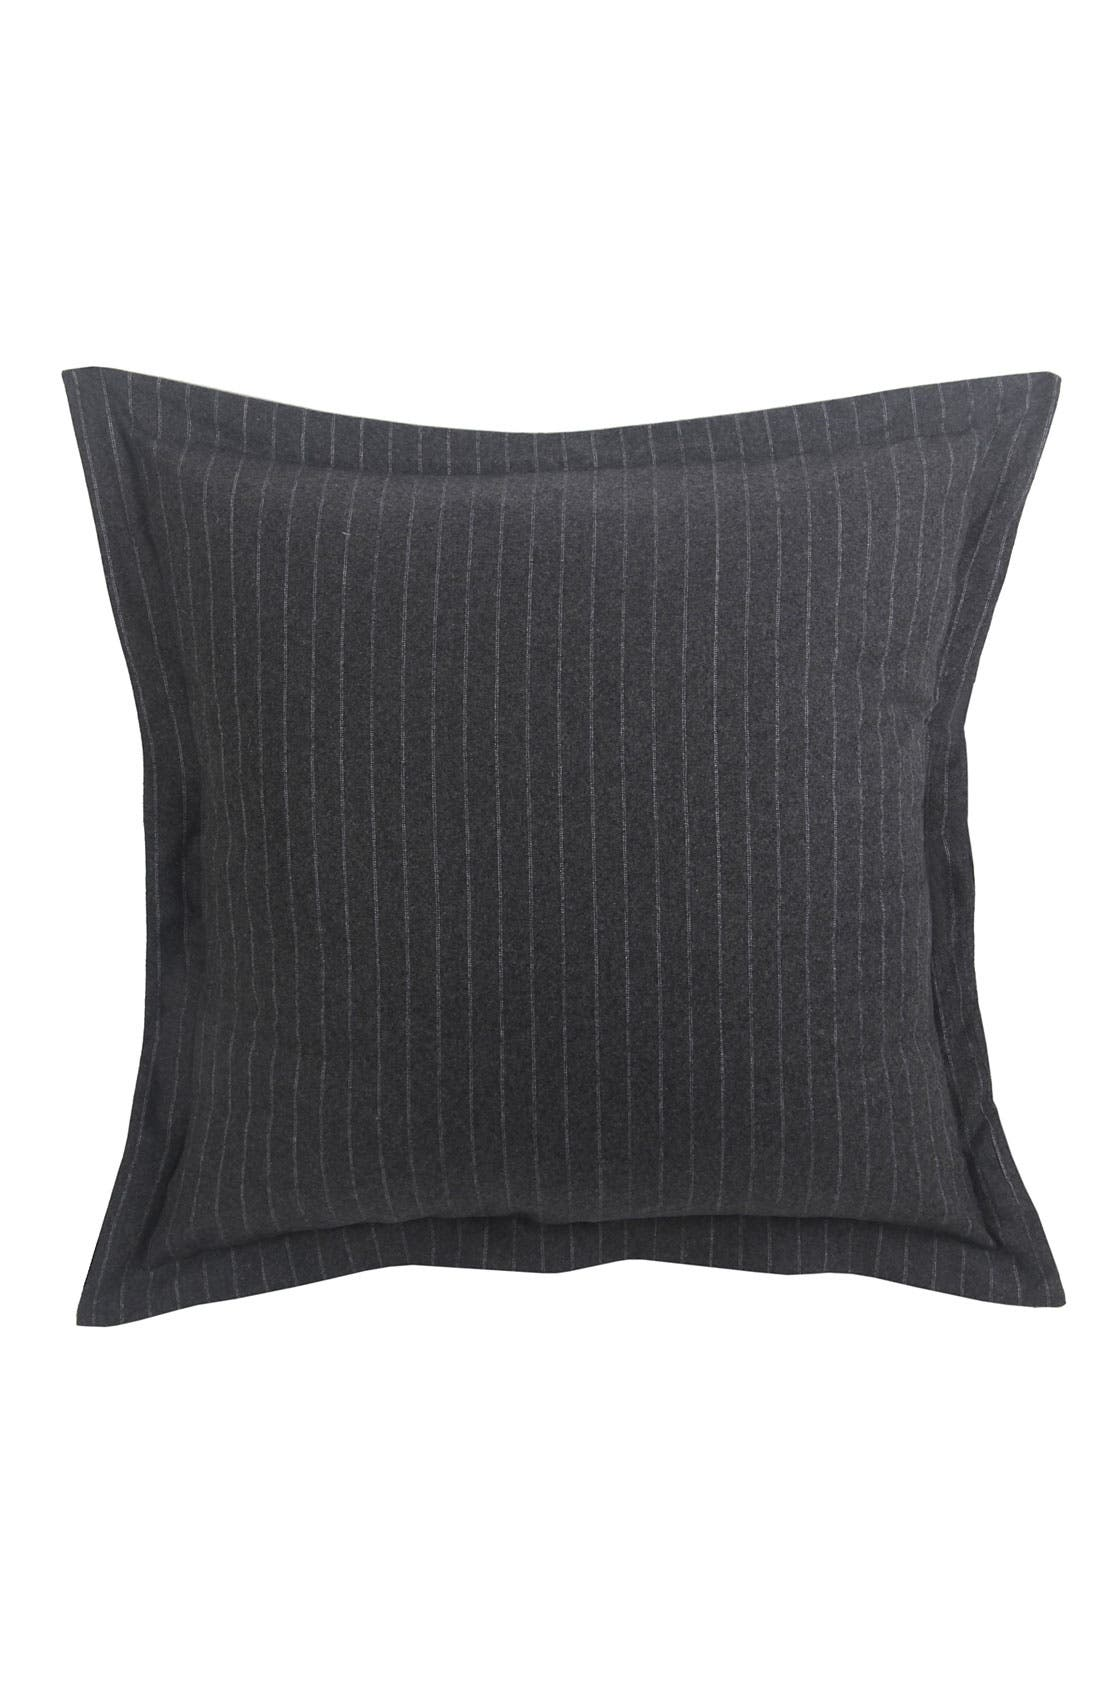 Main Image - Blissliving Home 'Legend' Euro Pillow